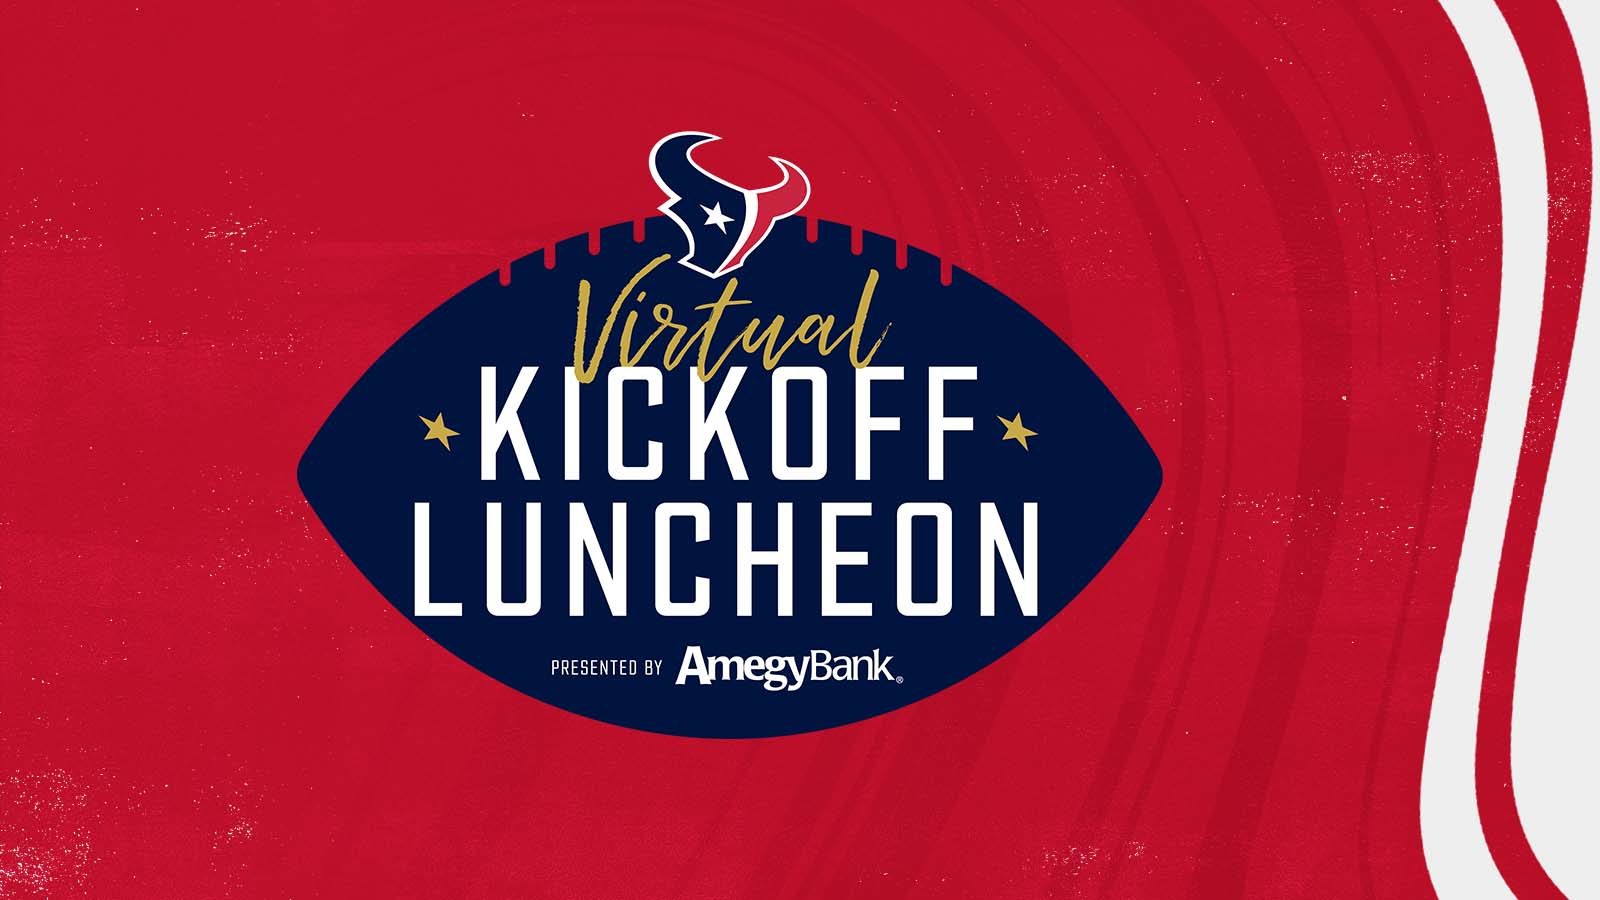 Virtual Kickoff Luncheon presented by Amegy Bank